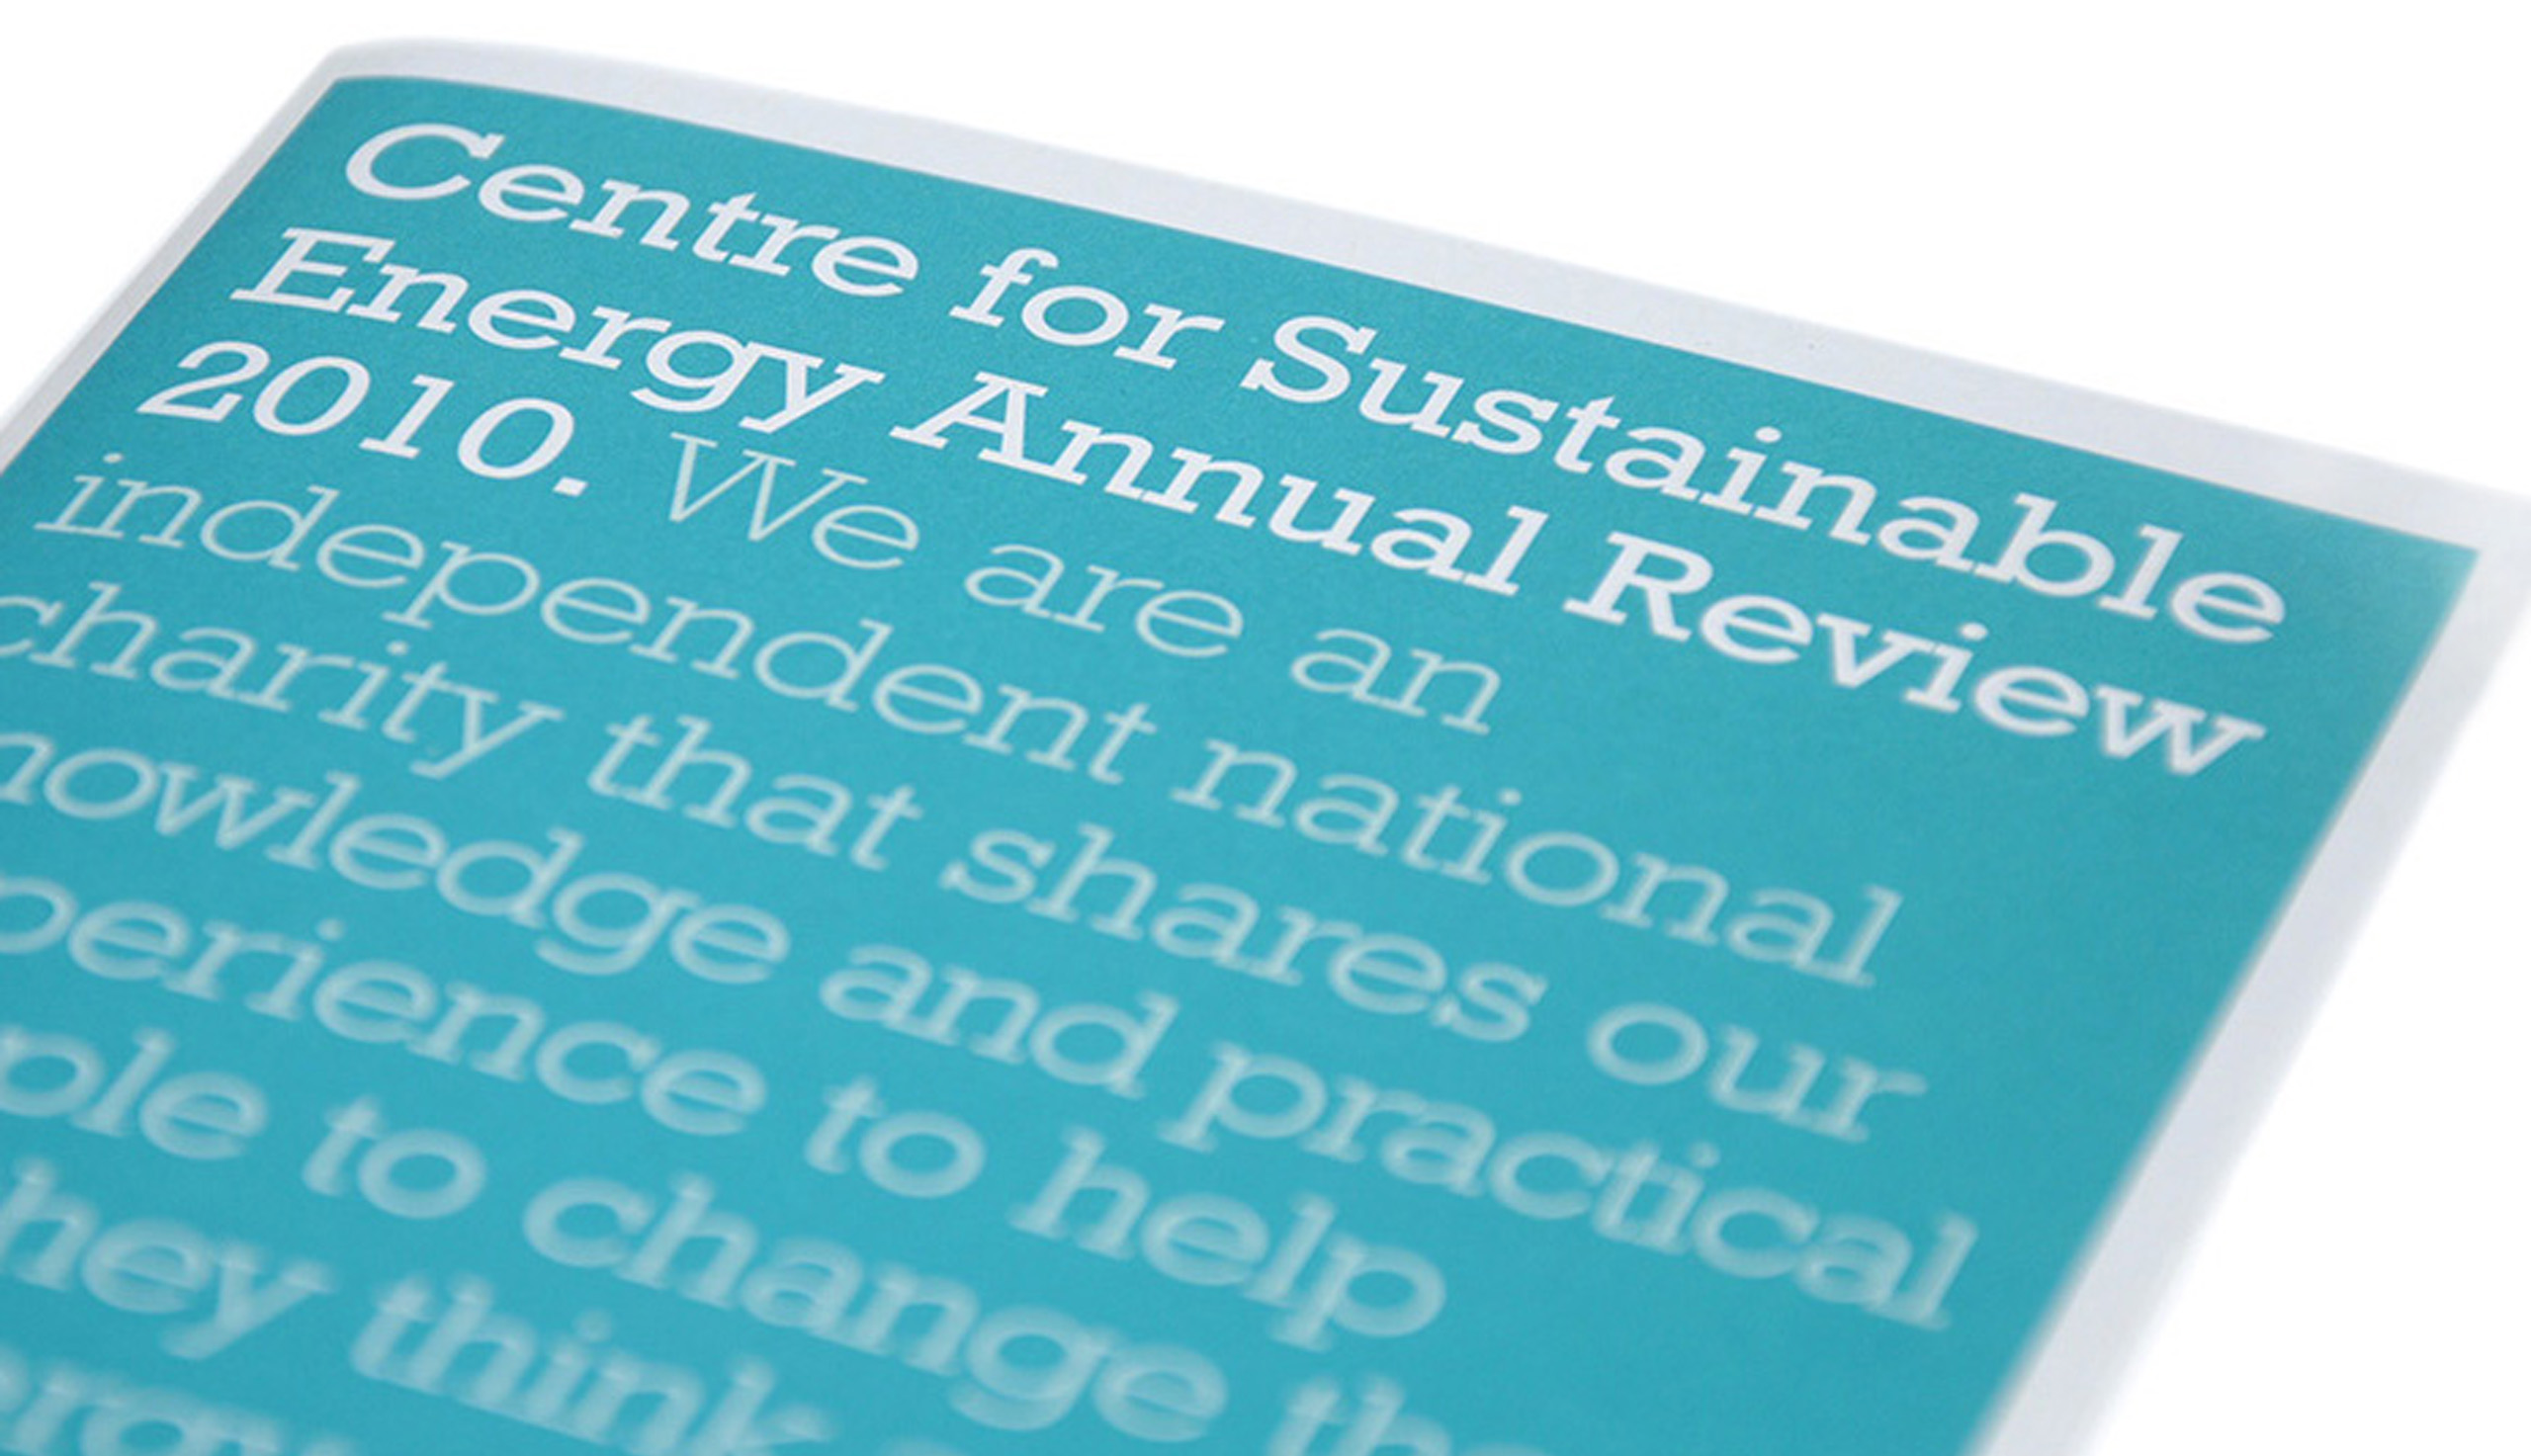 corporate identity, brand creation and development, CSE Annual Report cover design